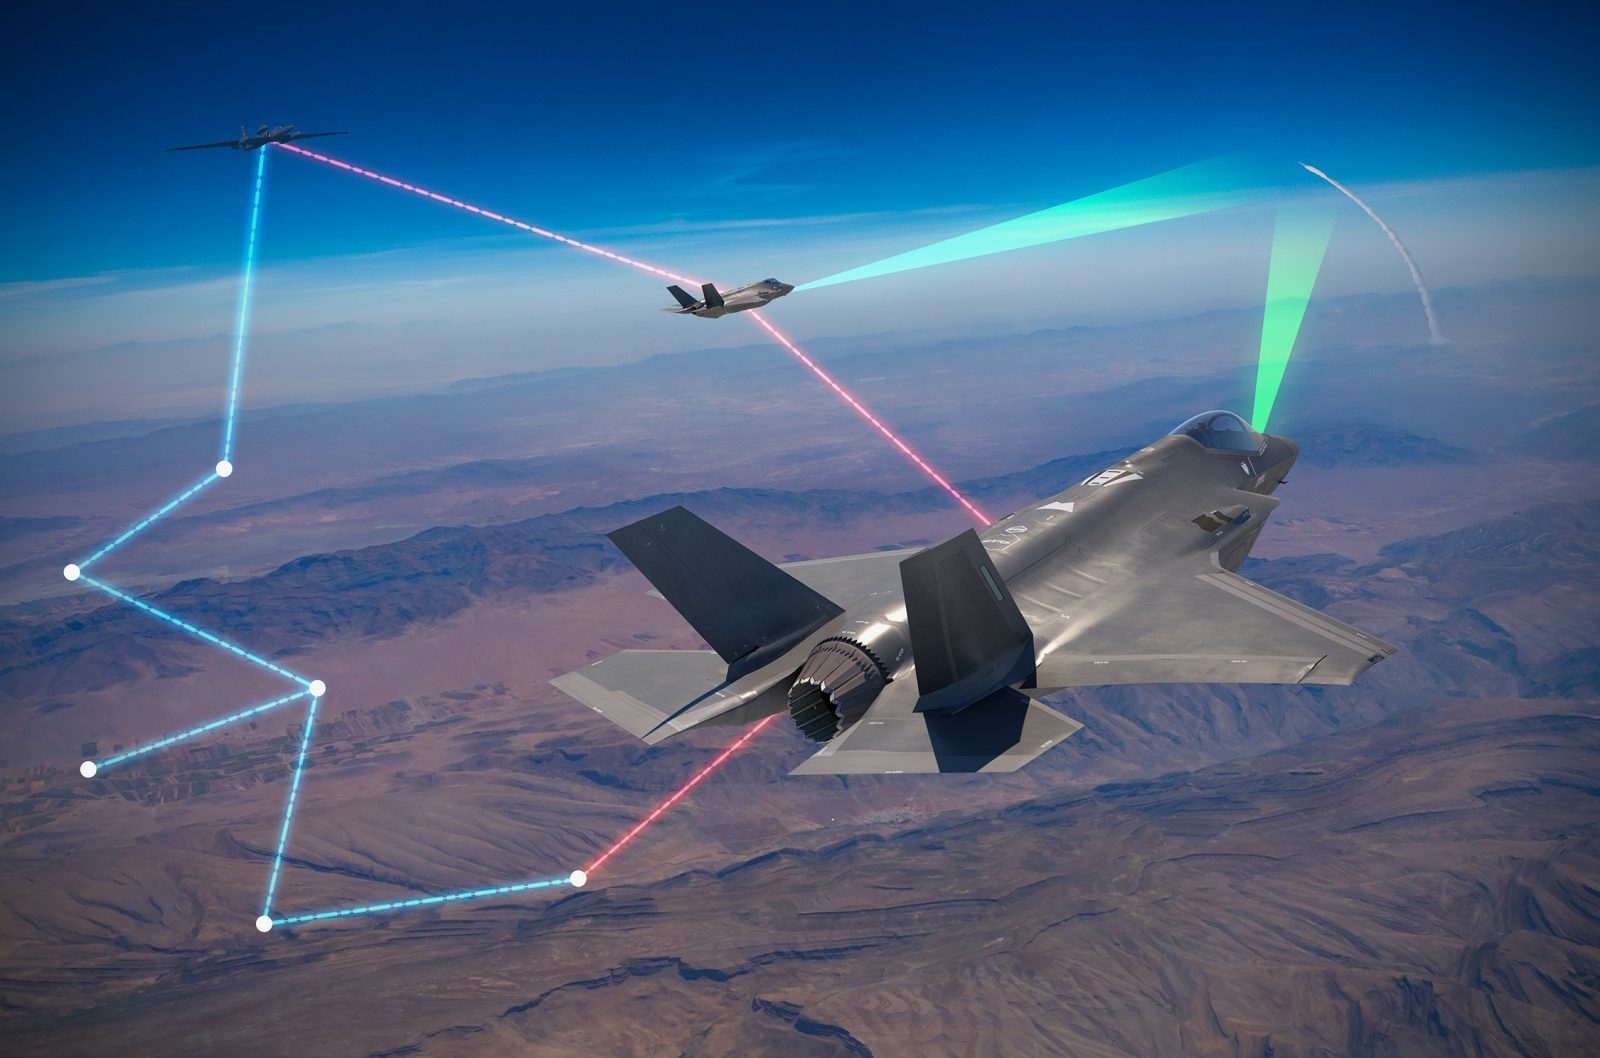 Project Riot: U.S. Air Force Successfully Connected an F-35 Fighter Jet With a U-2 Spy Plane